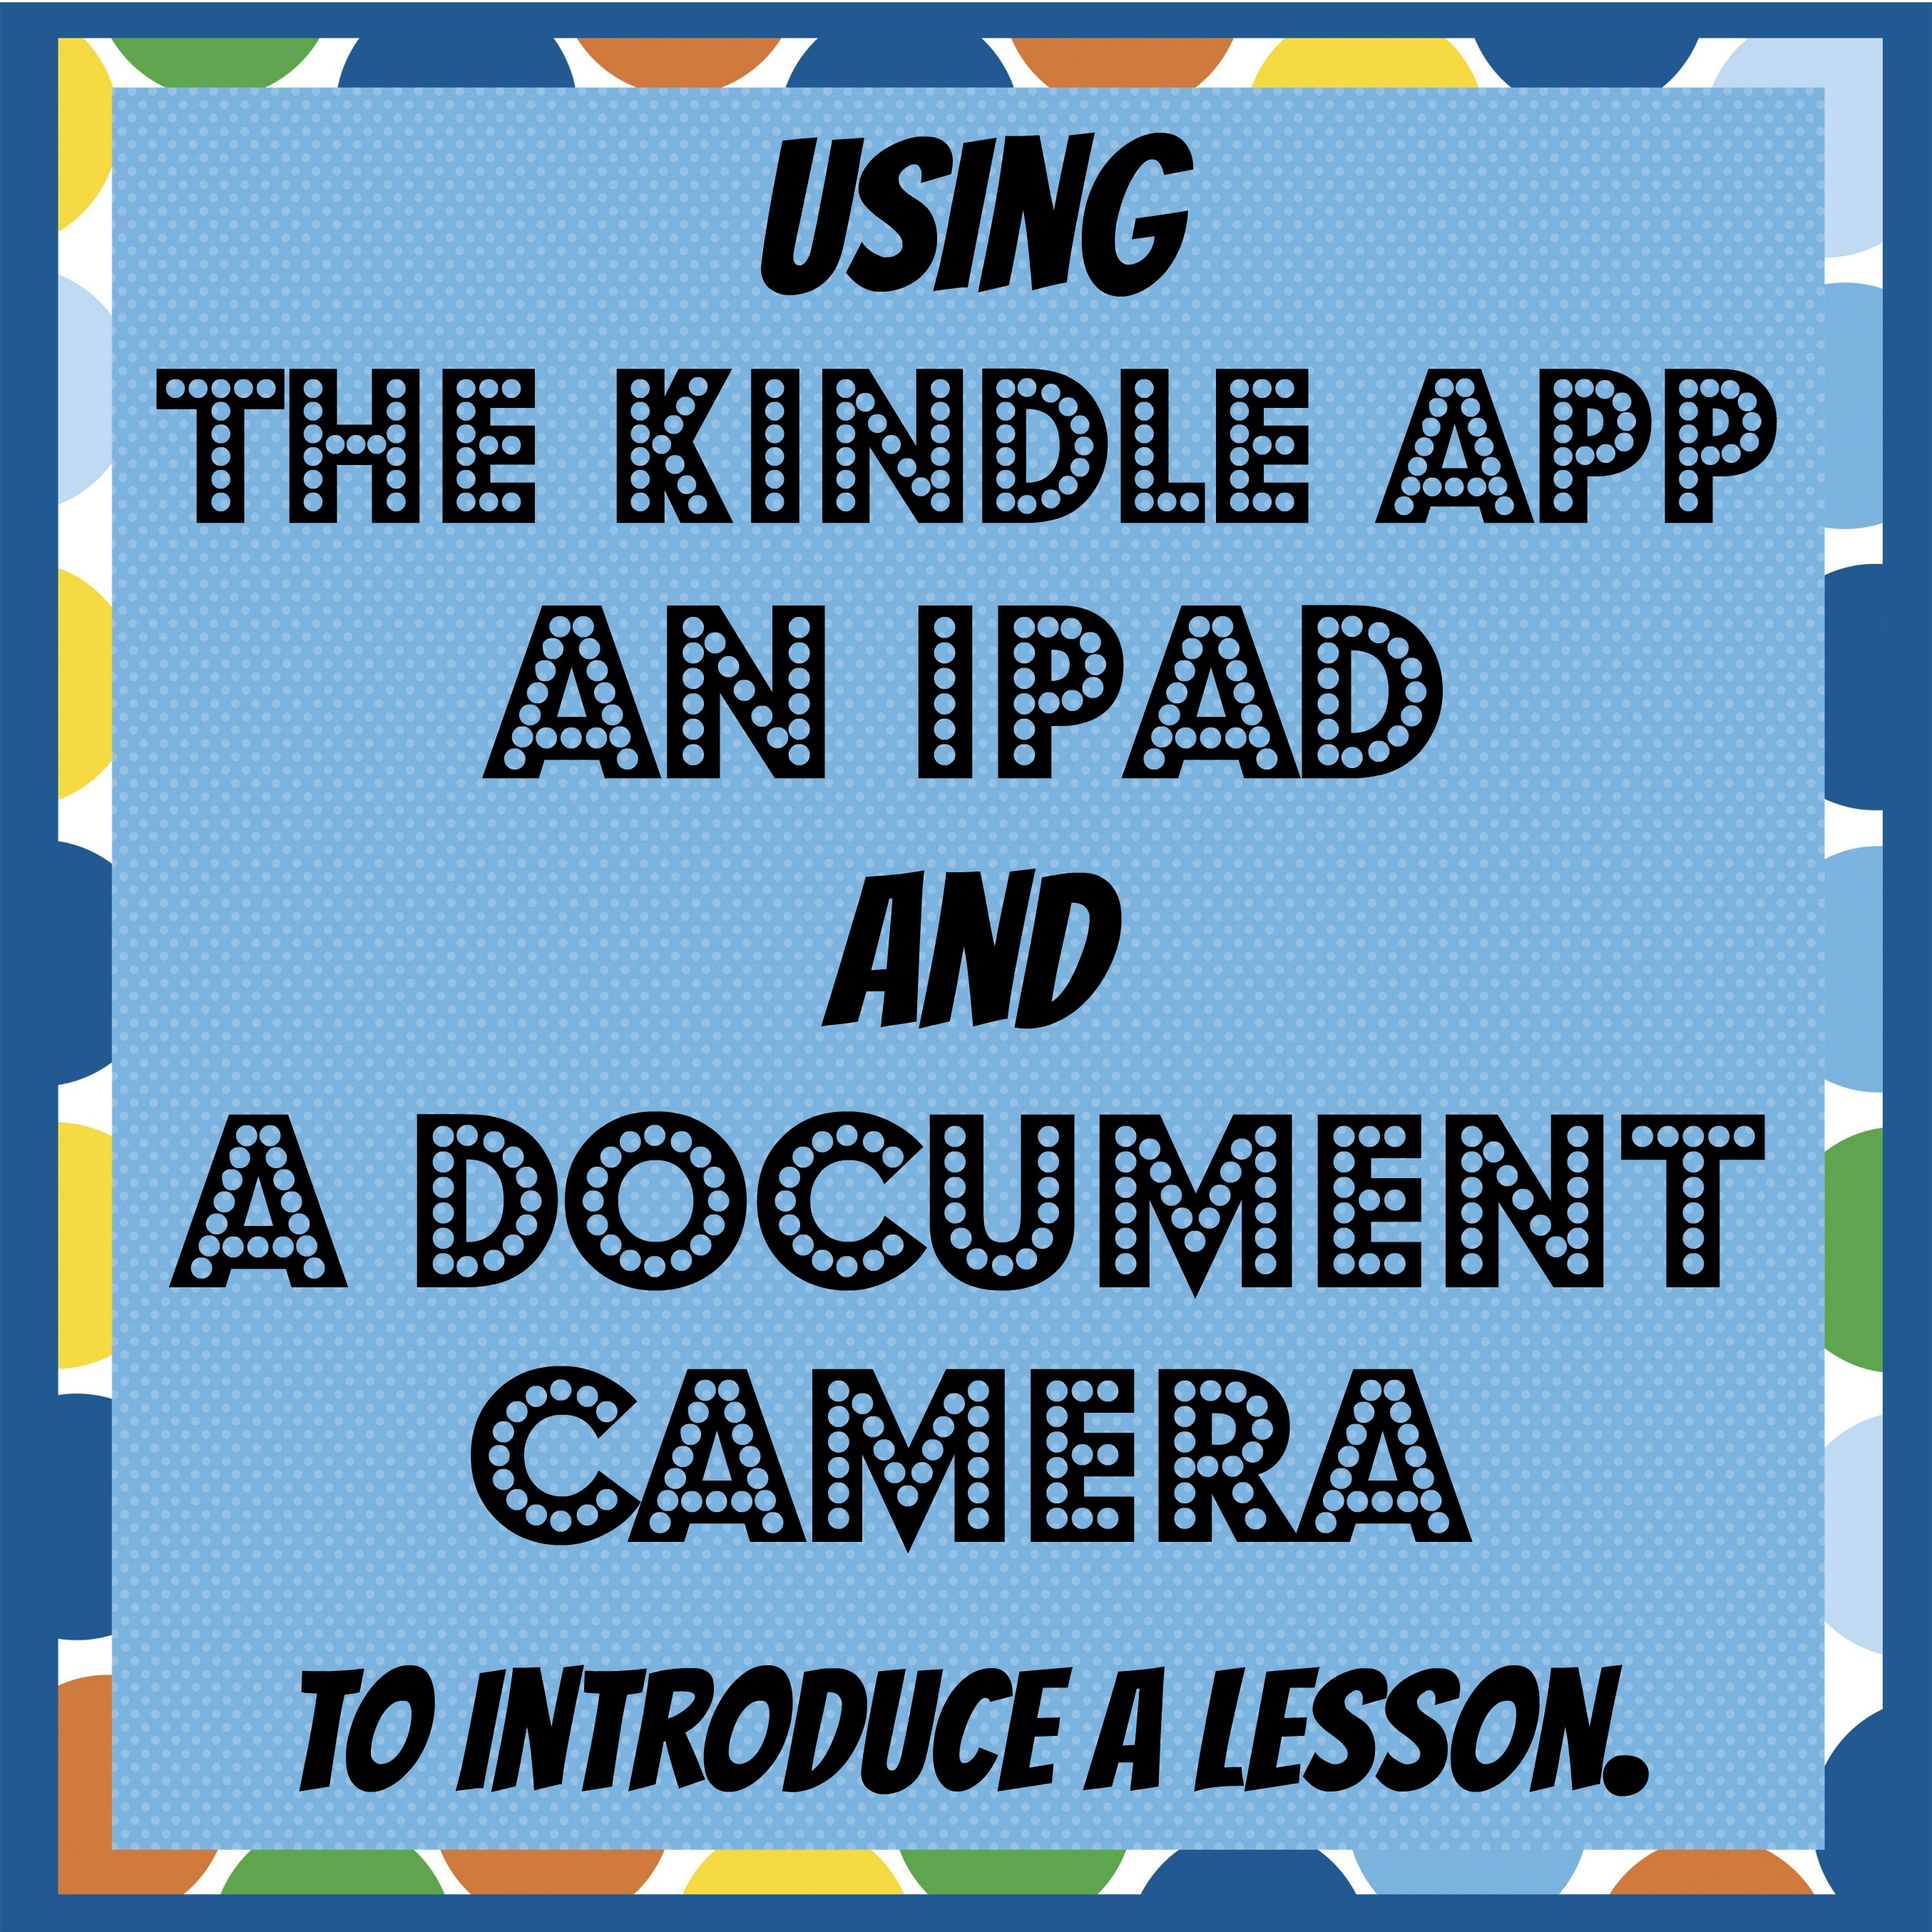 Using the Kindle app ipad and document camera